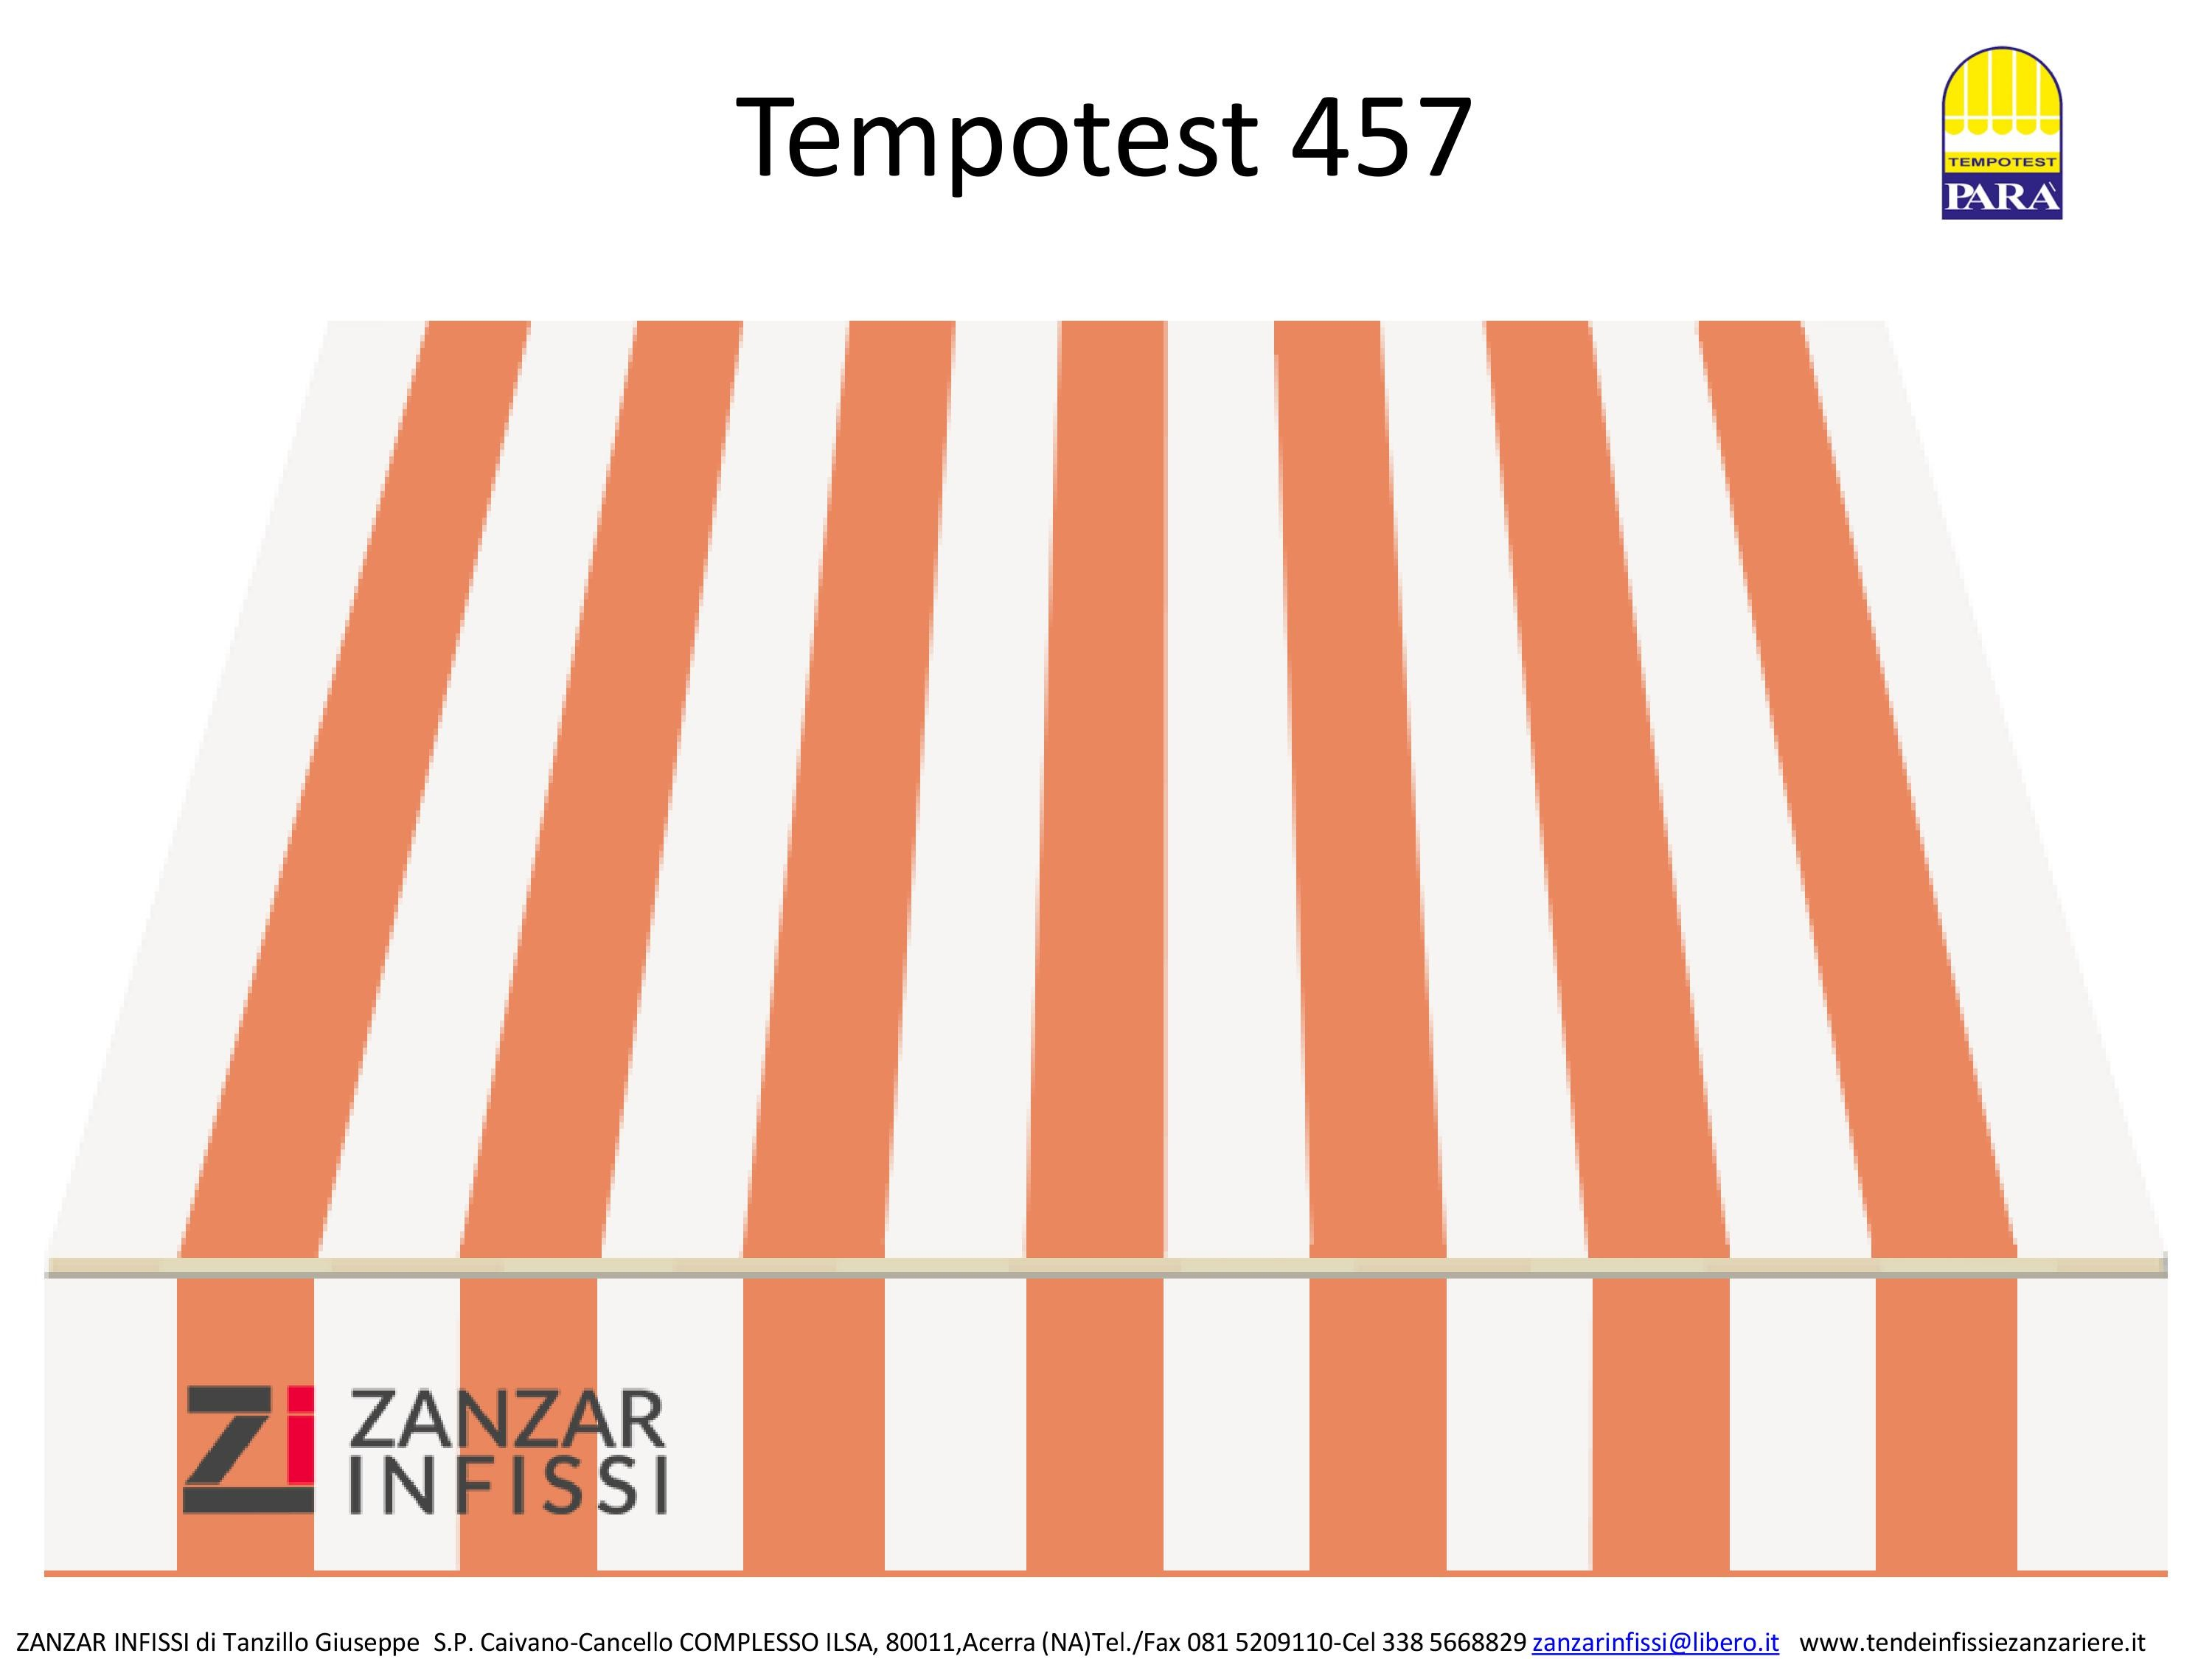 Tempotest 457